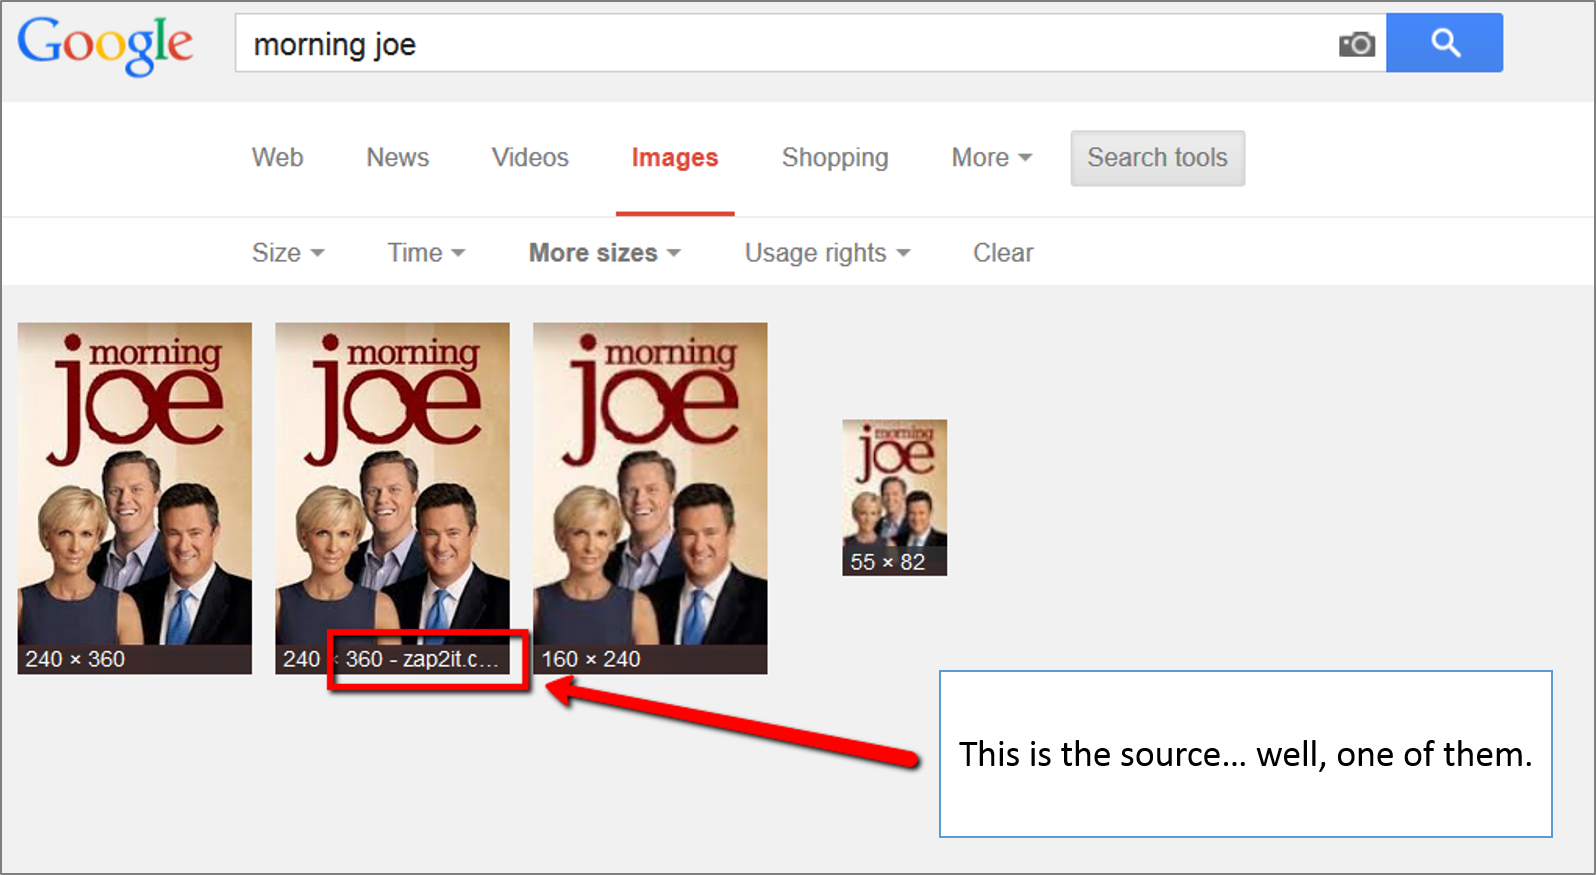 Has Google Gone Too Far with the Bias Toward Its Own Content?